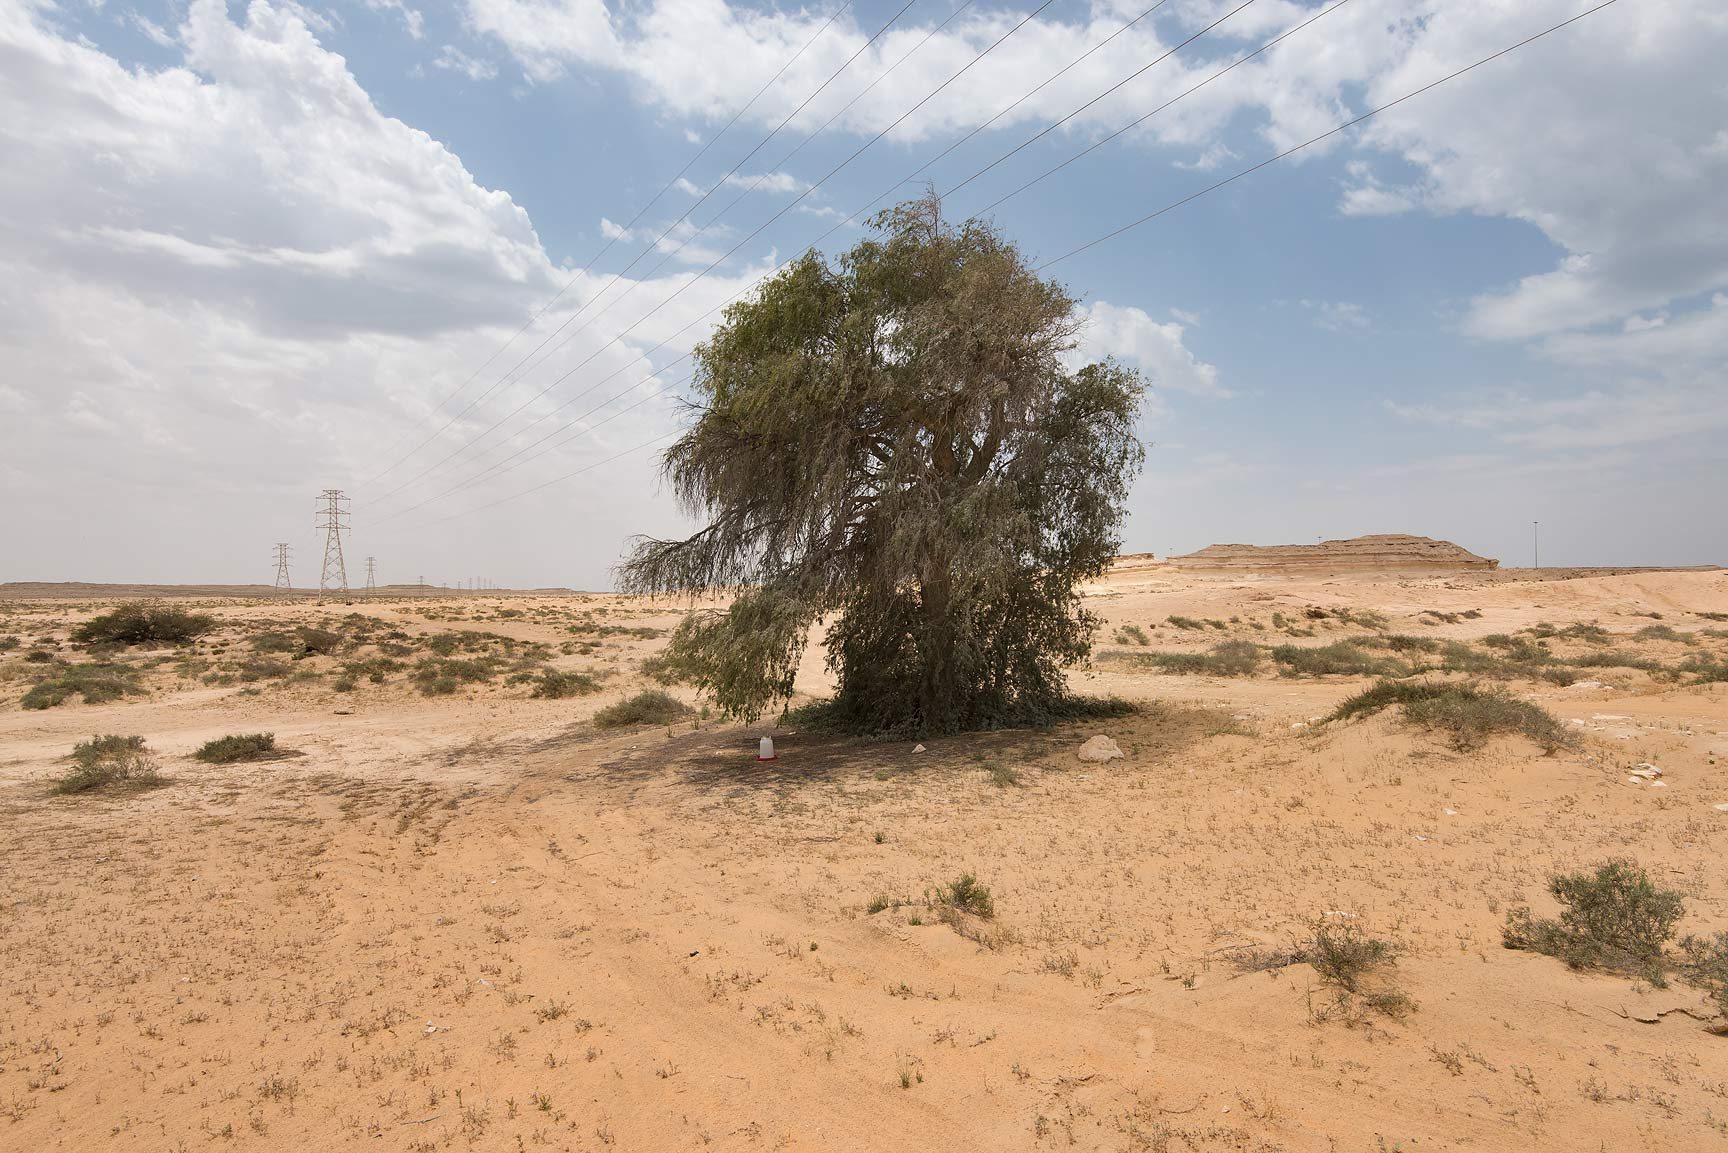 Ghaf tree (Prosopis cineraria) near Salwa Rd. in area of Rawdat Ekdaim. Southern Qatar